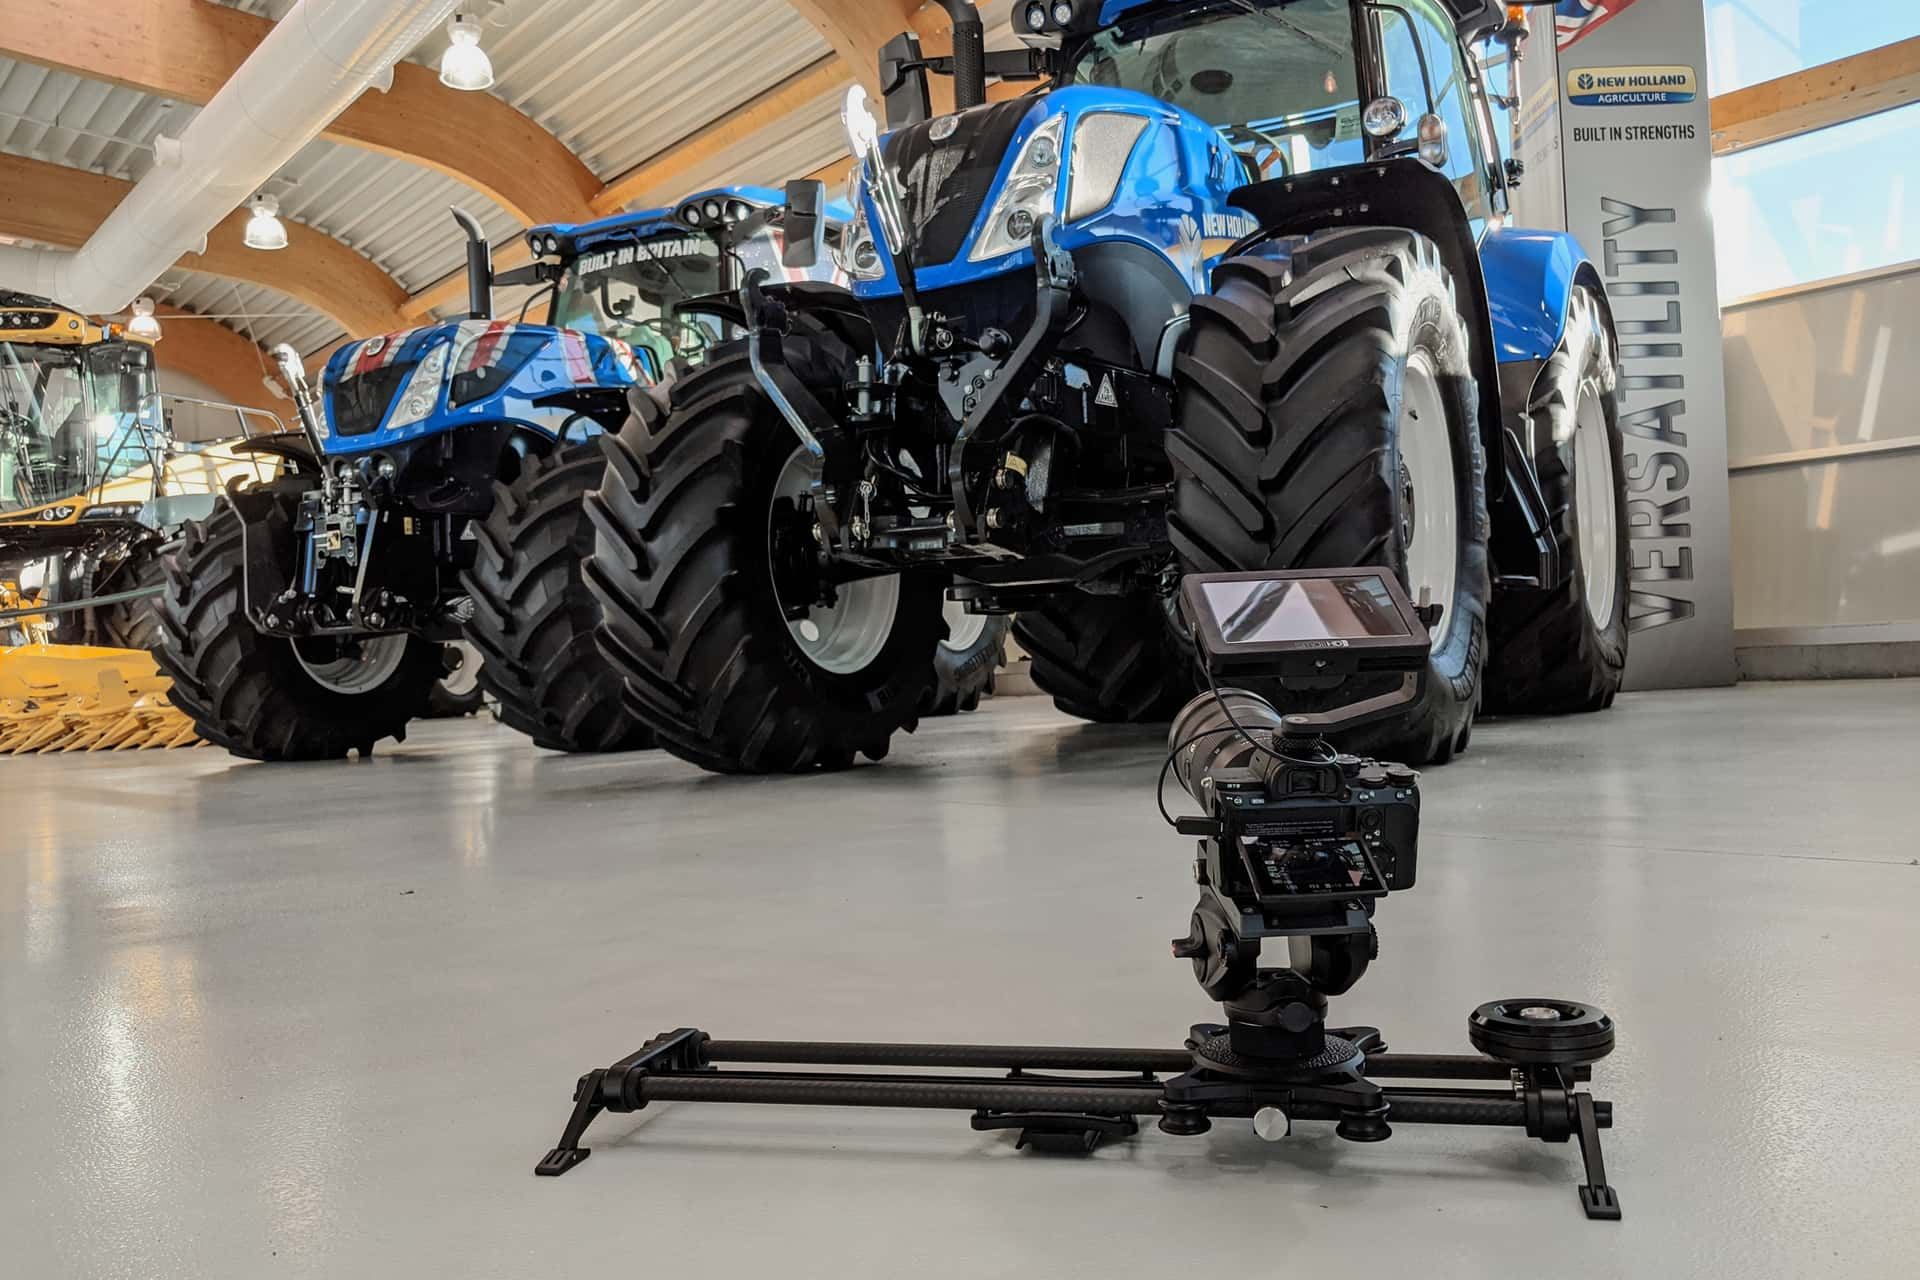 Camera filming large tractors in a warehouse